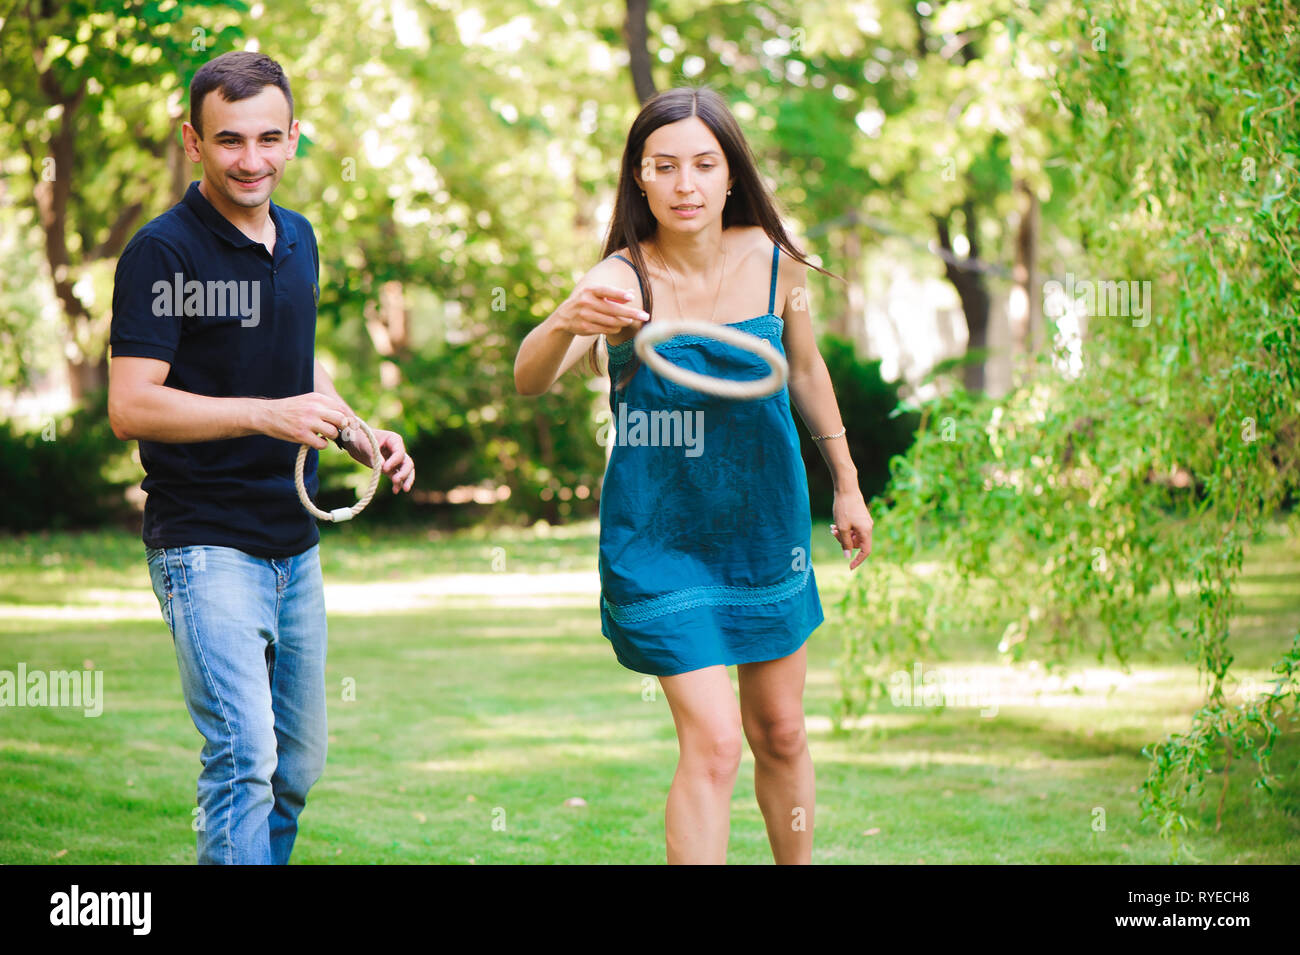 Guy and girl compete in the ring toss - Stock Image